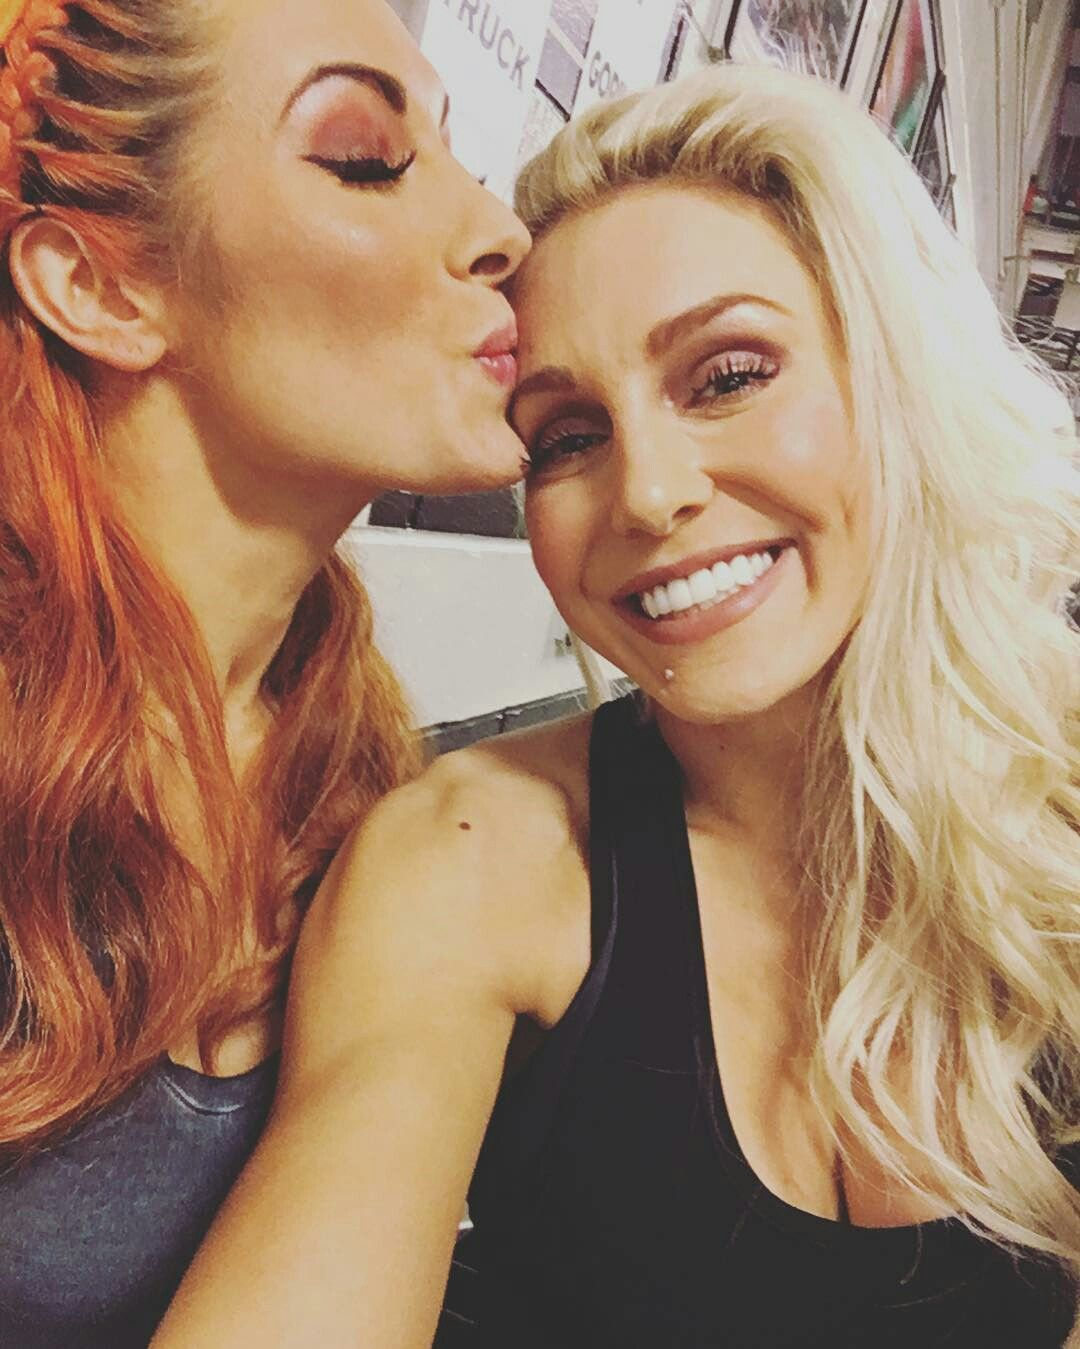 Alexa bliss gif hunt - 17 Best Images About Rasslin On Pinterest Jeff Hardy Cm Punk And Dolph Ziggler